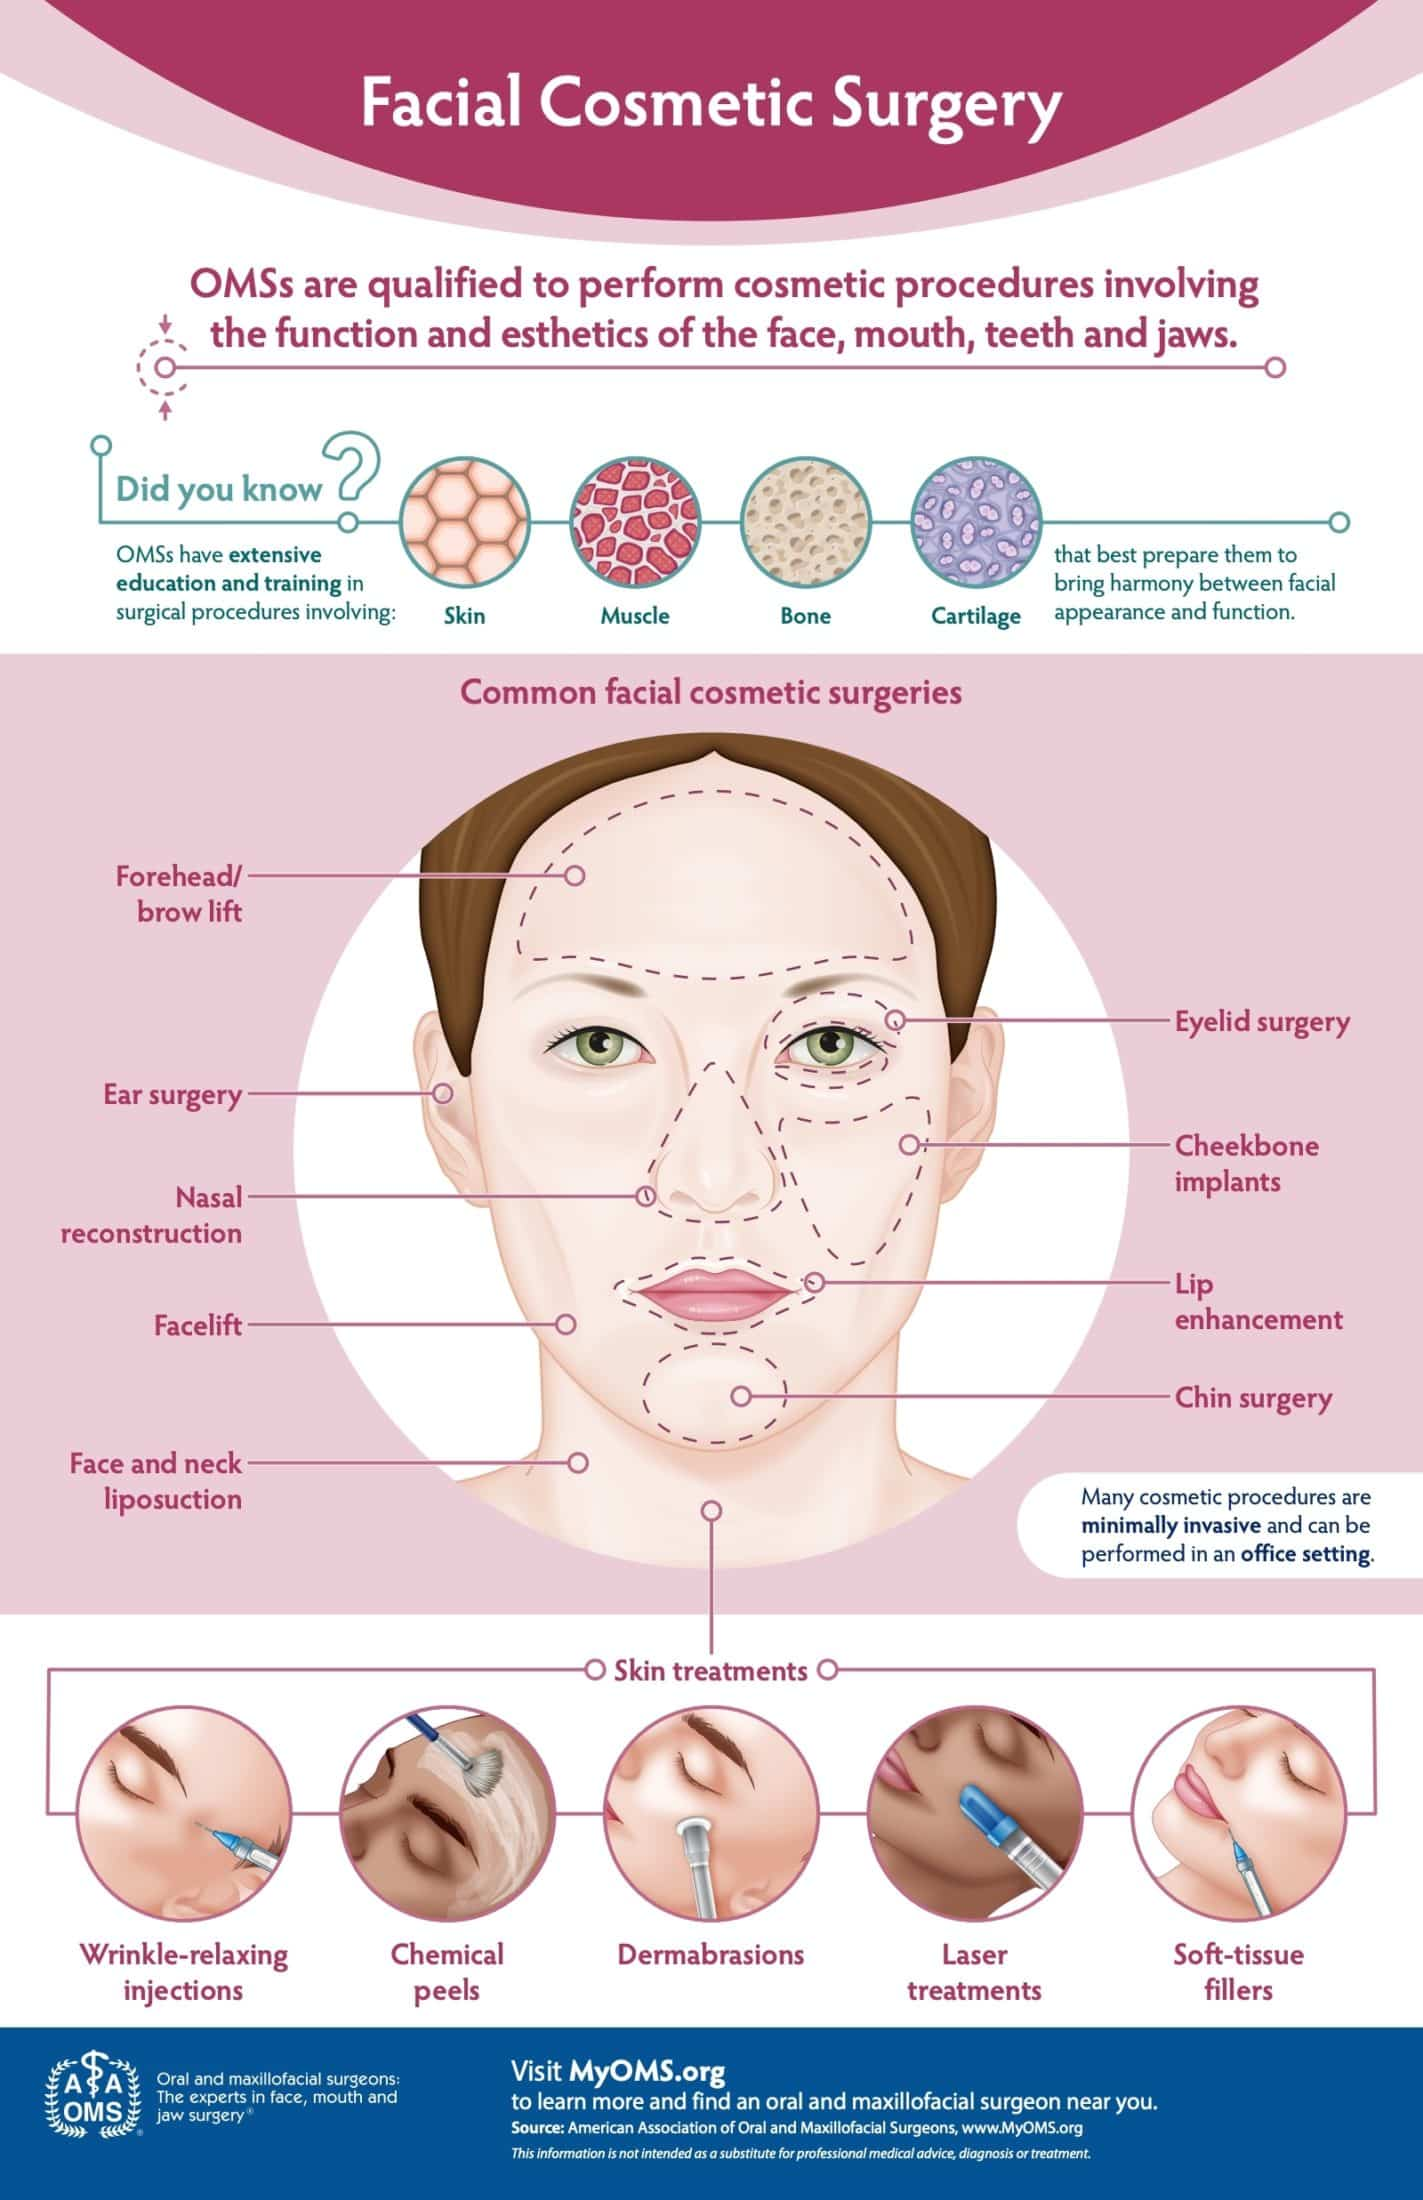 Facial Cosmetic Surgery Infographic